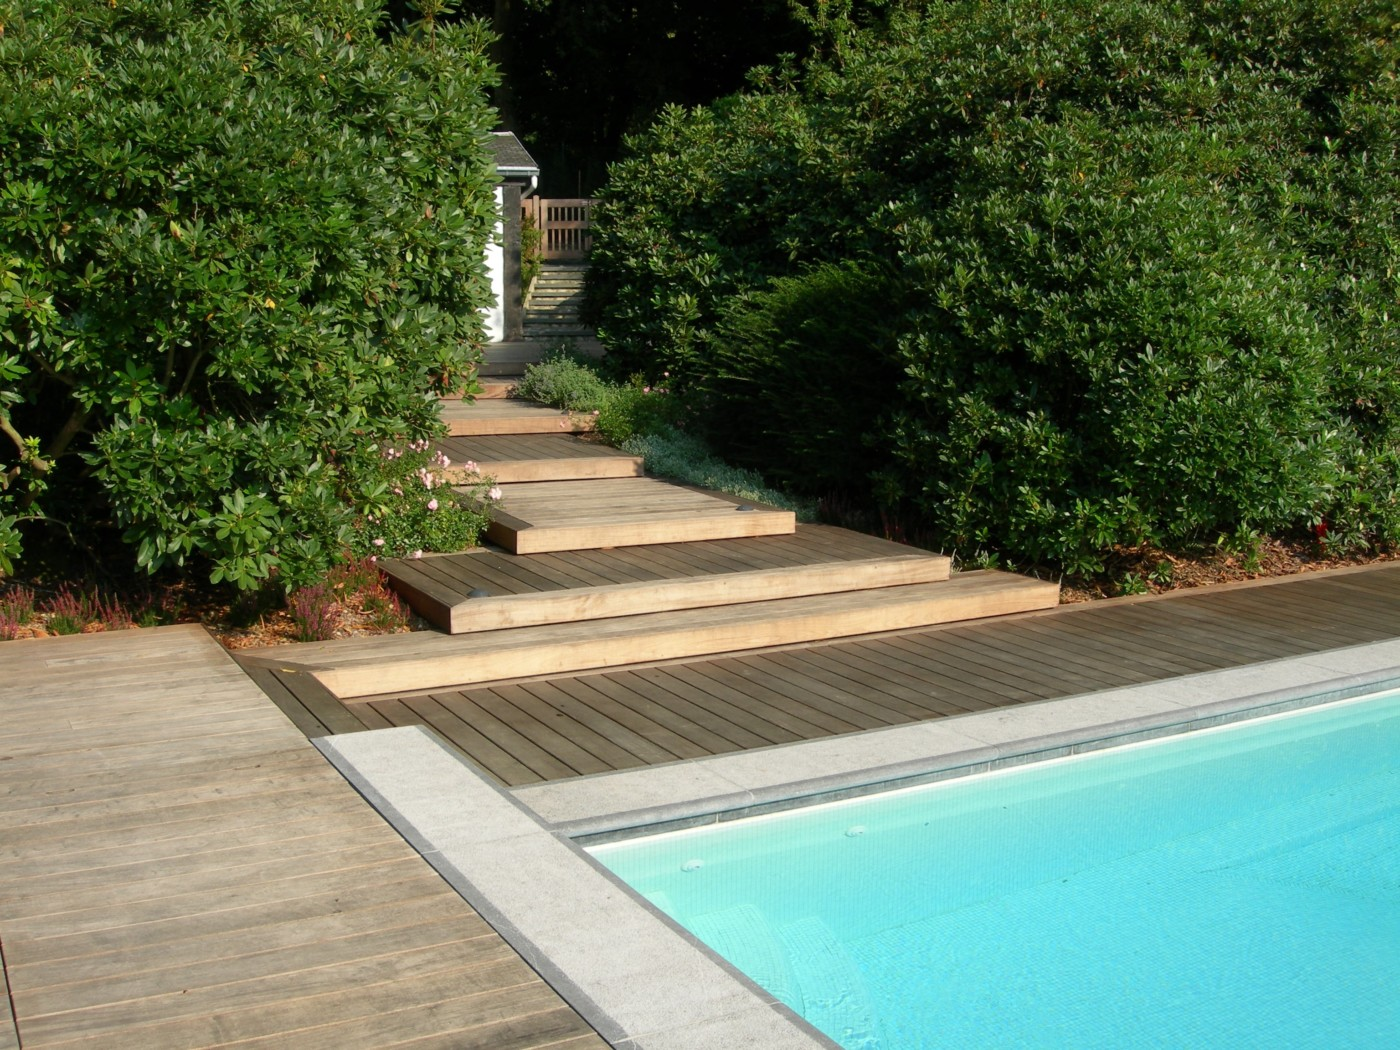 Terrasse de piscine sur mesure en ip mt design for Piscine bois montana